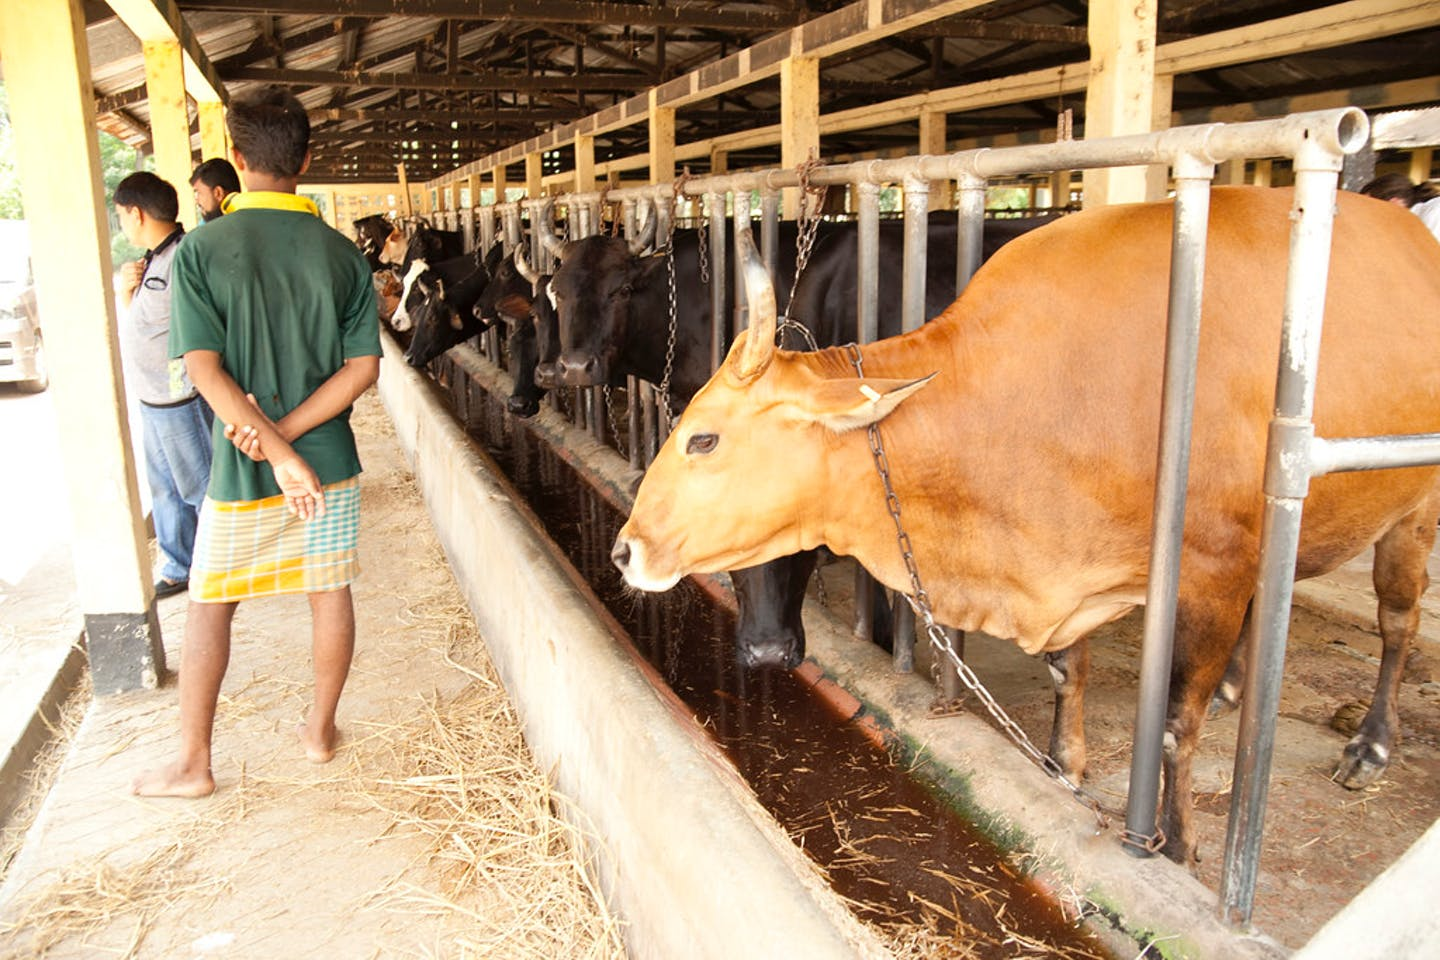 Cattle raised for beef in a barn in Bangladesh